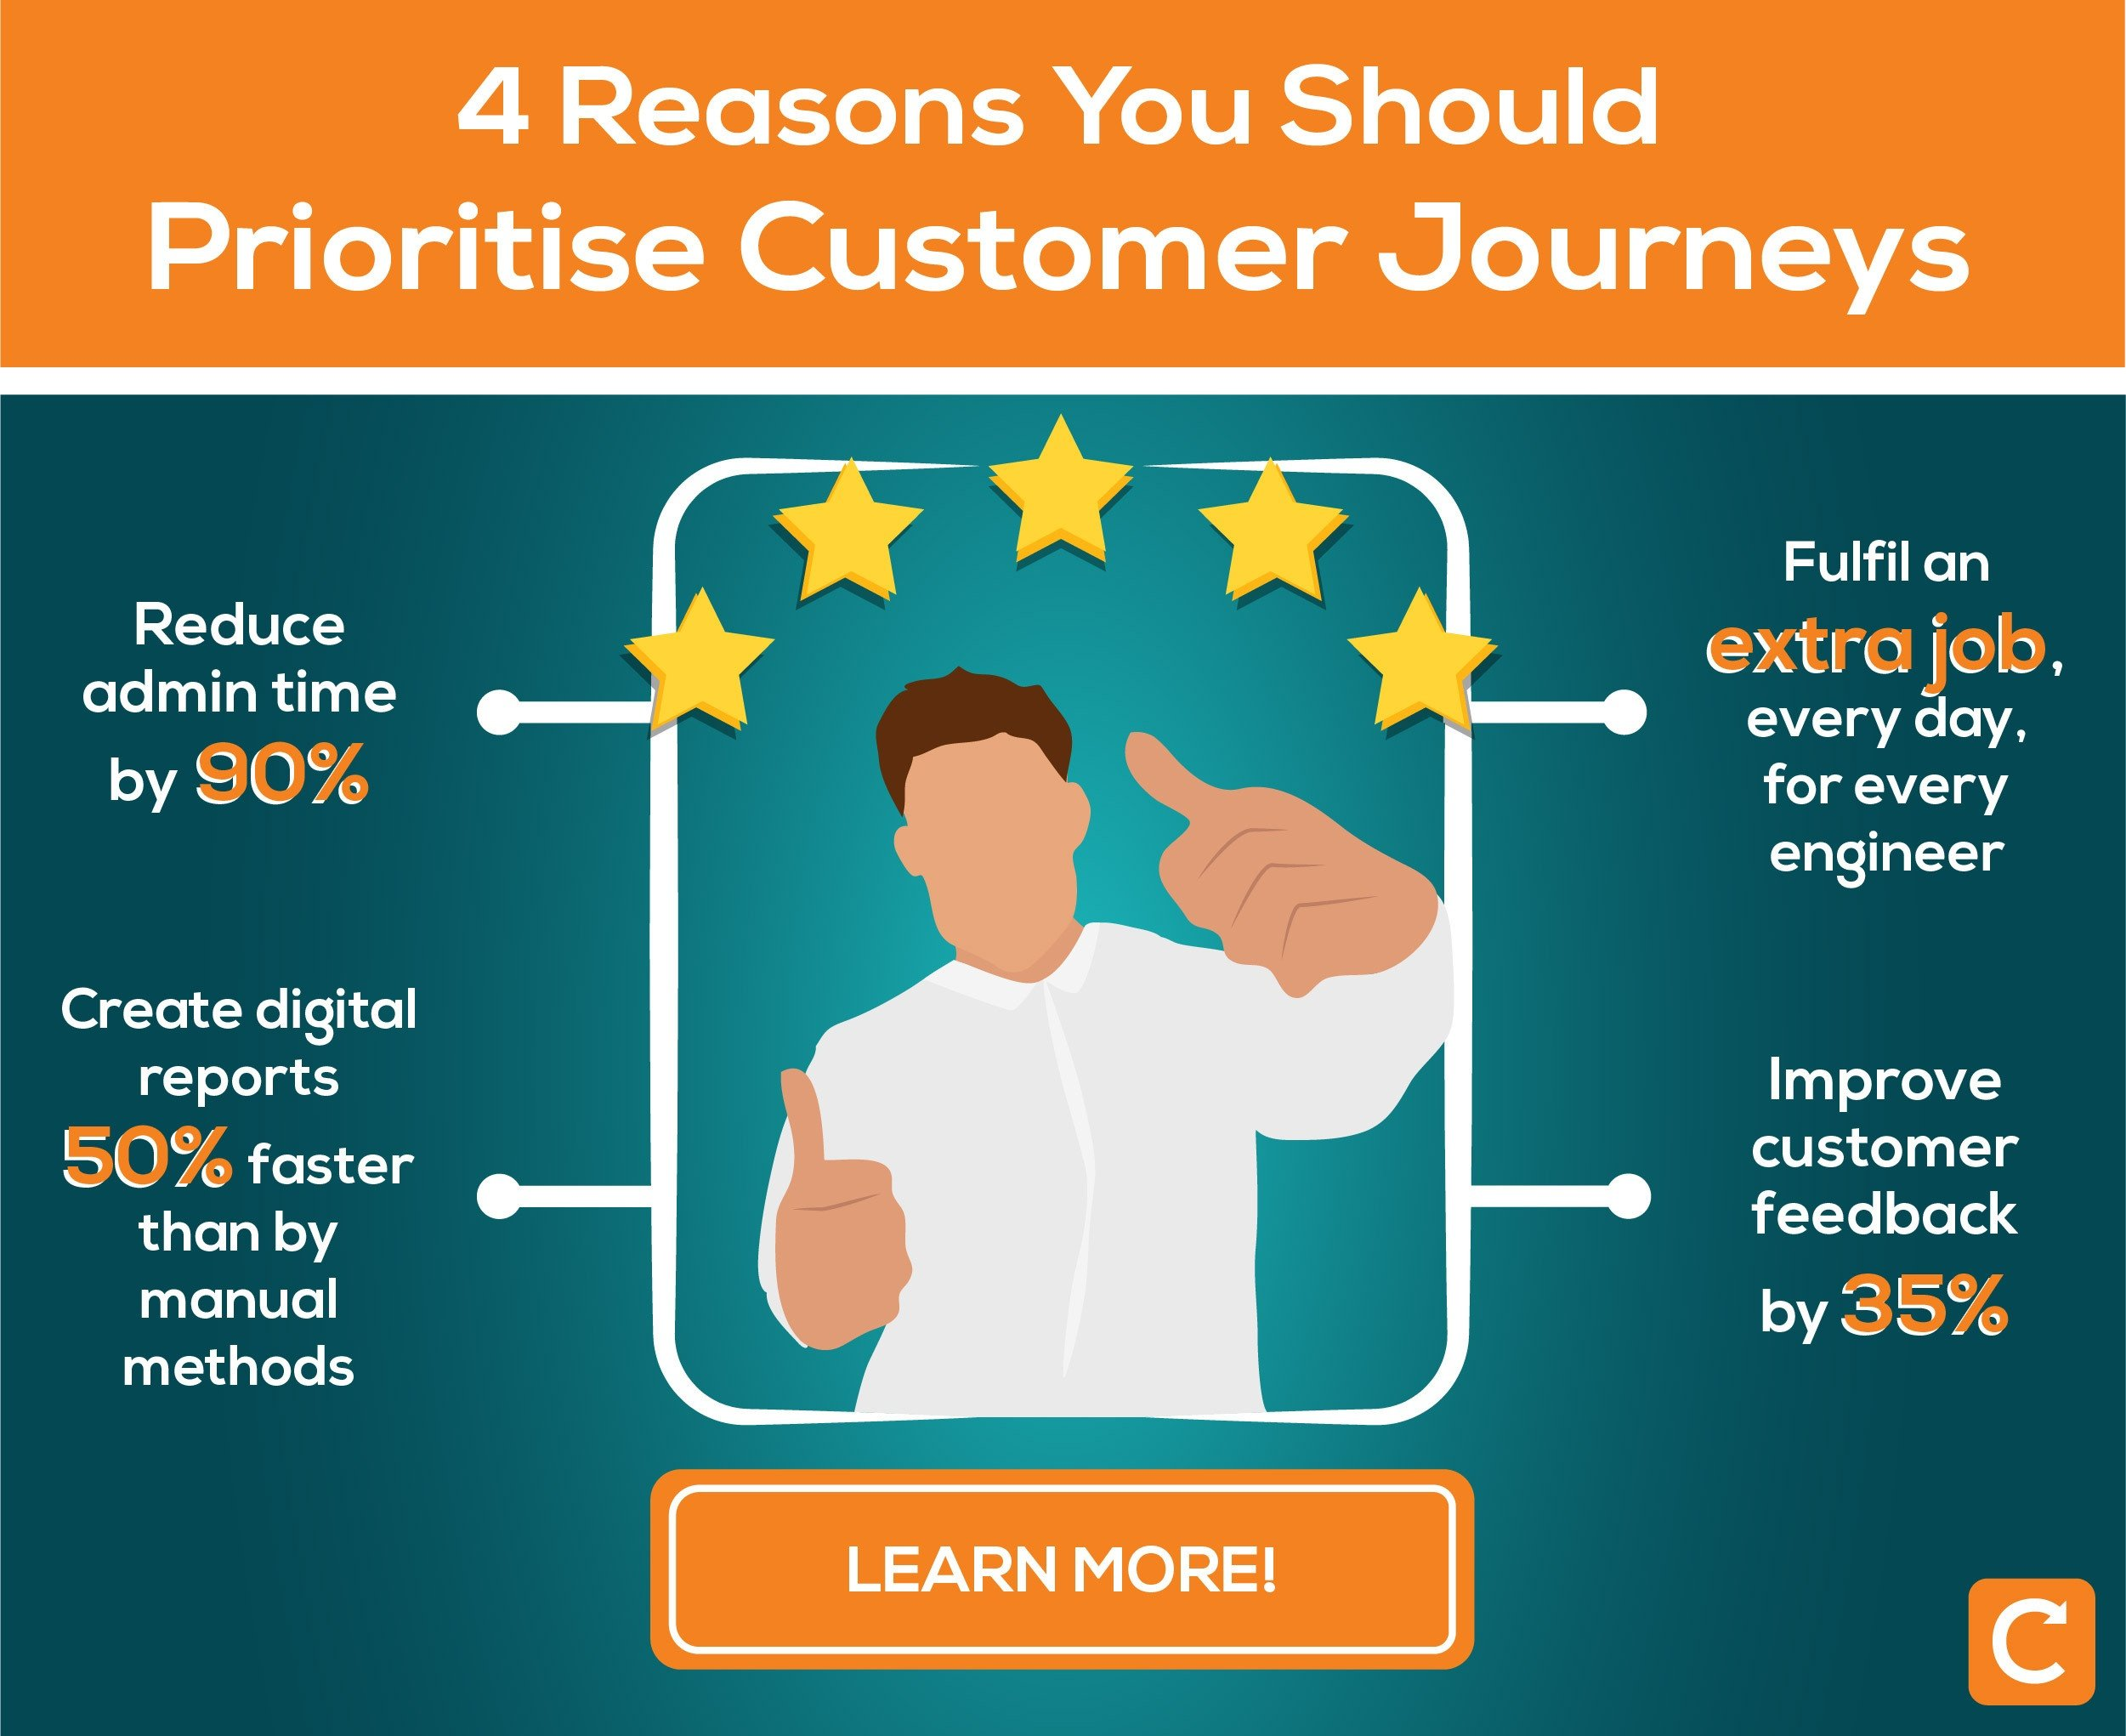 4 reasons you should prioritise customer journeys, learn more about reducing admin time, creating detail reports quickly, booking more jobs everyday, and more. click to check out customer journeys with commusoft